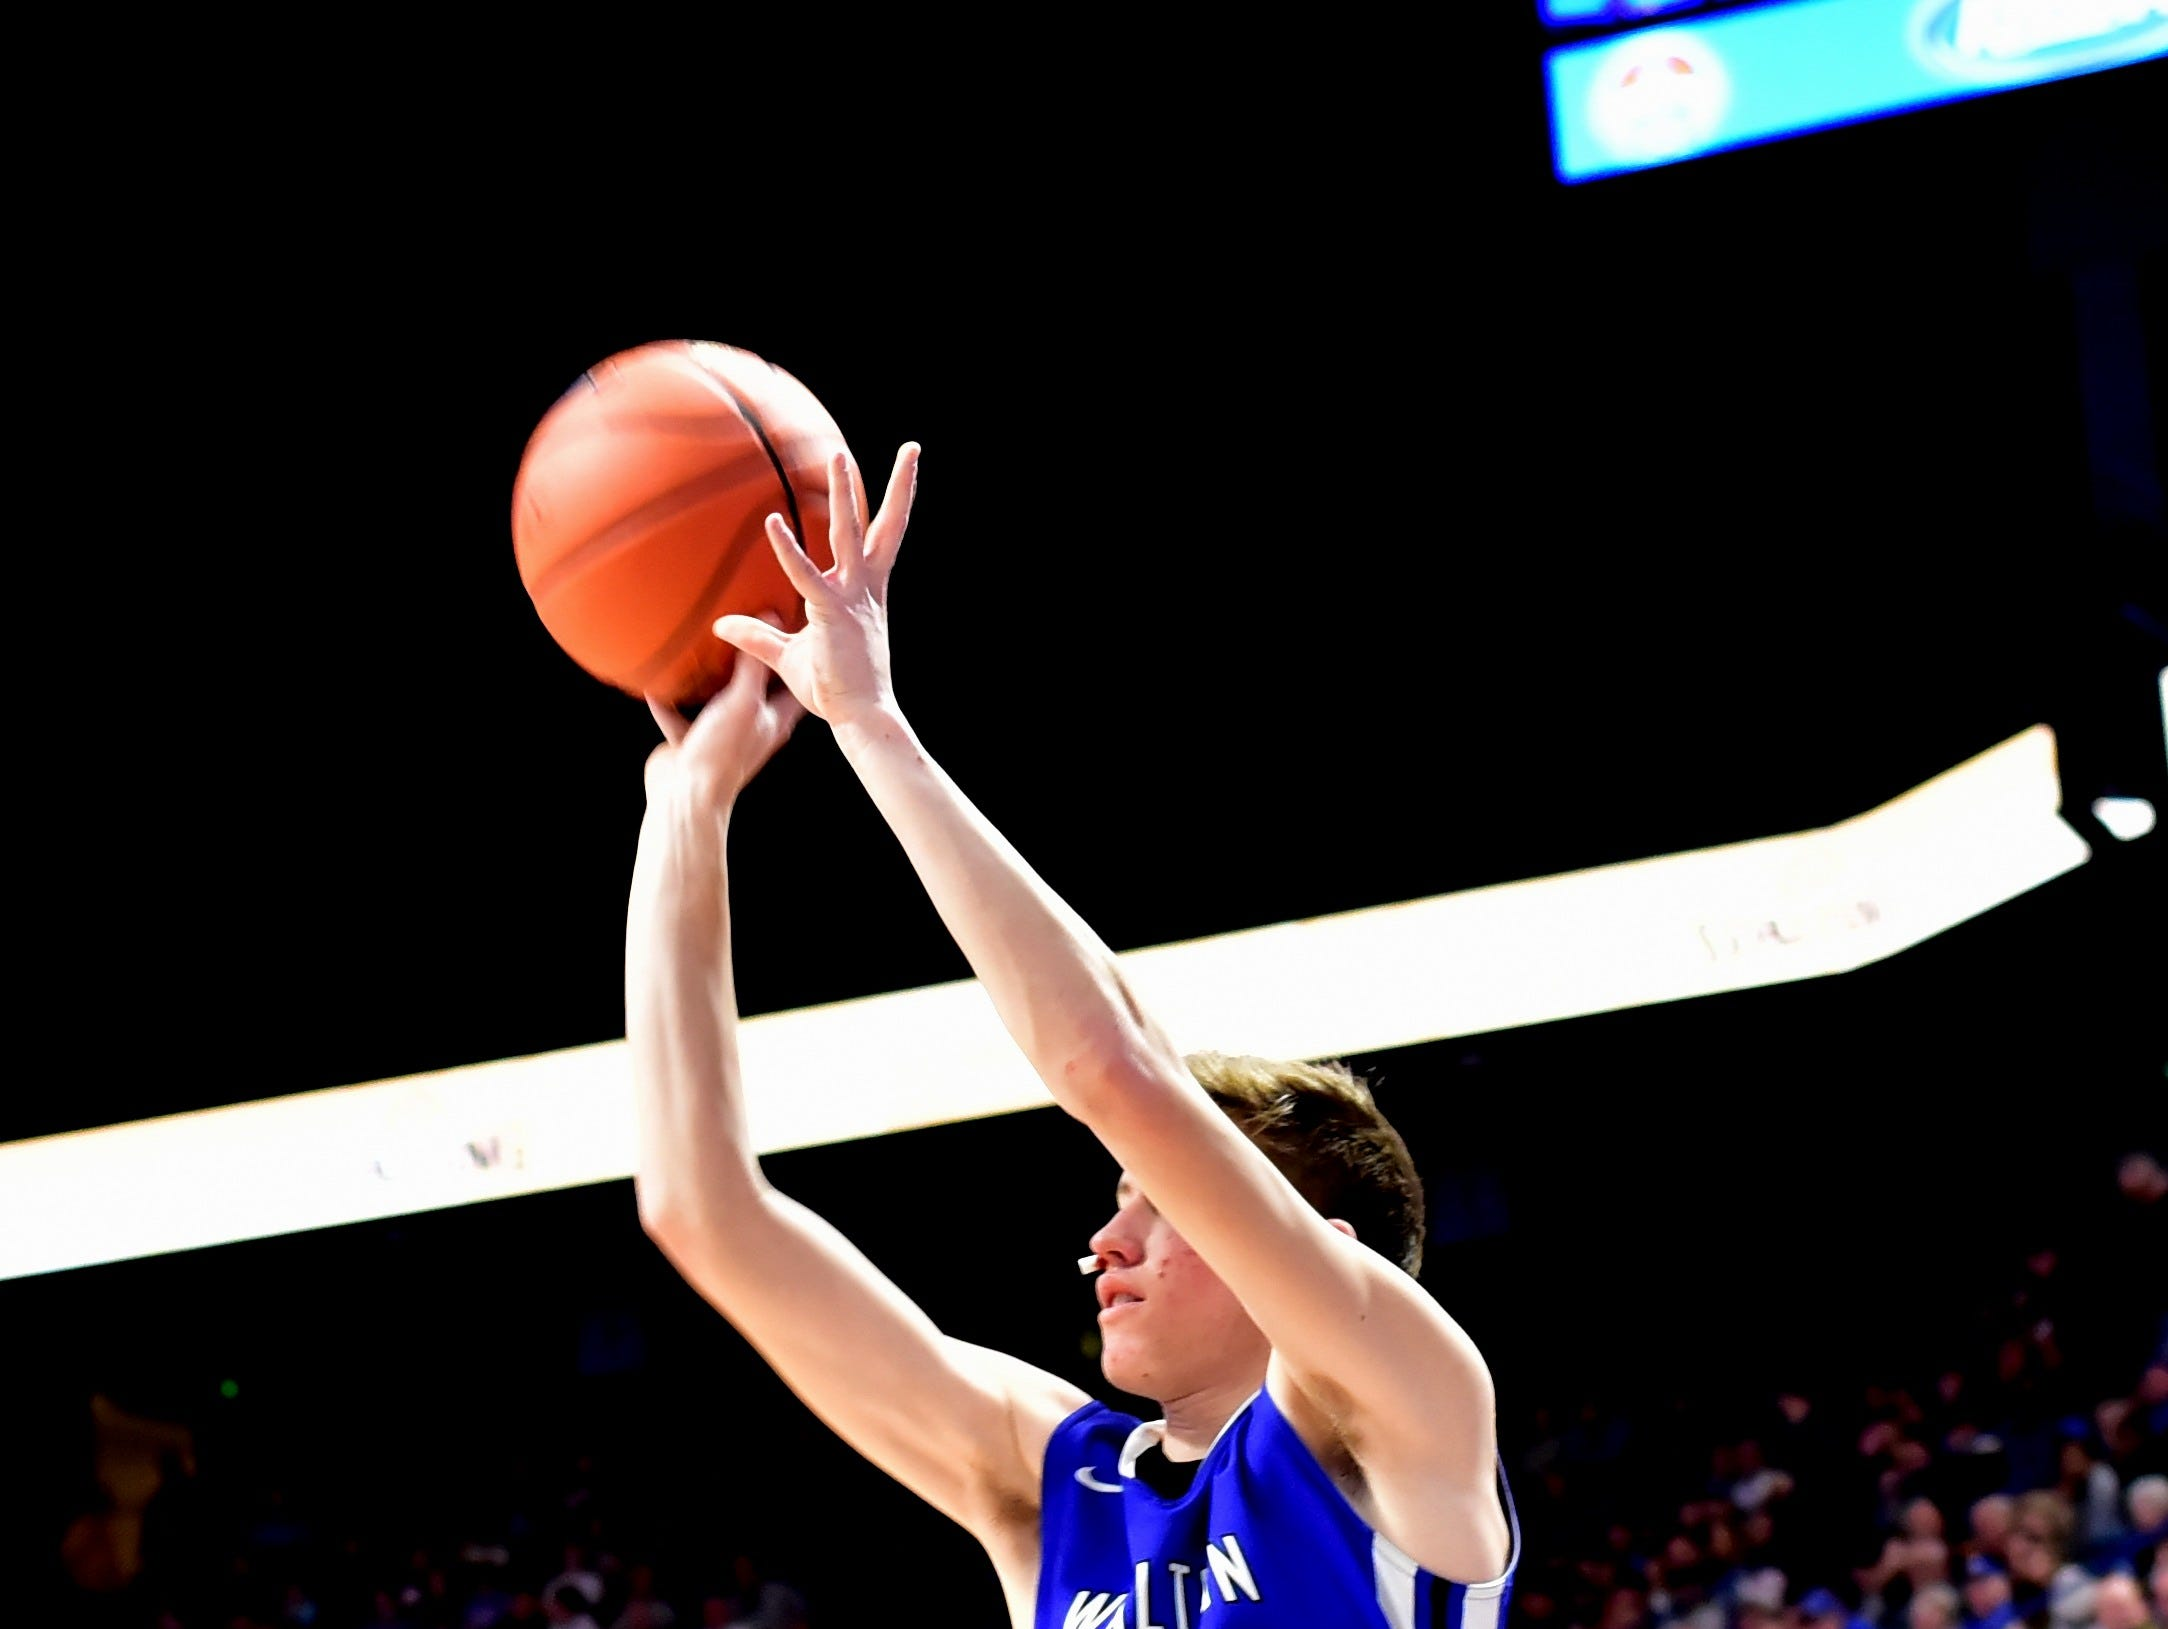 Walton Verona's Trey Bonne drains a three pointer for the Bearcats at the KHSAA Sweet 16 Tournament at Rupp Arena in Lexington, KY, March 6, 2019